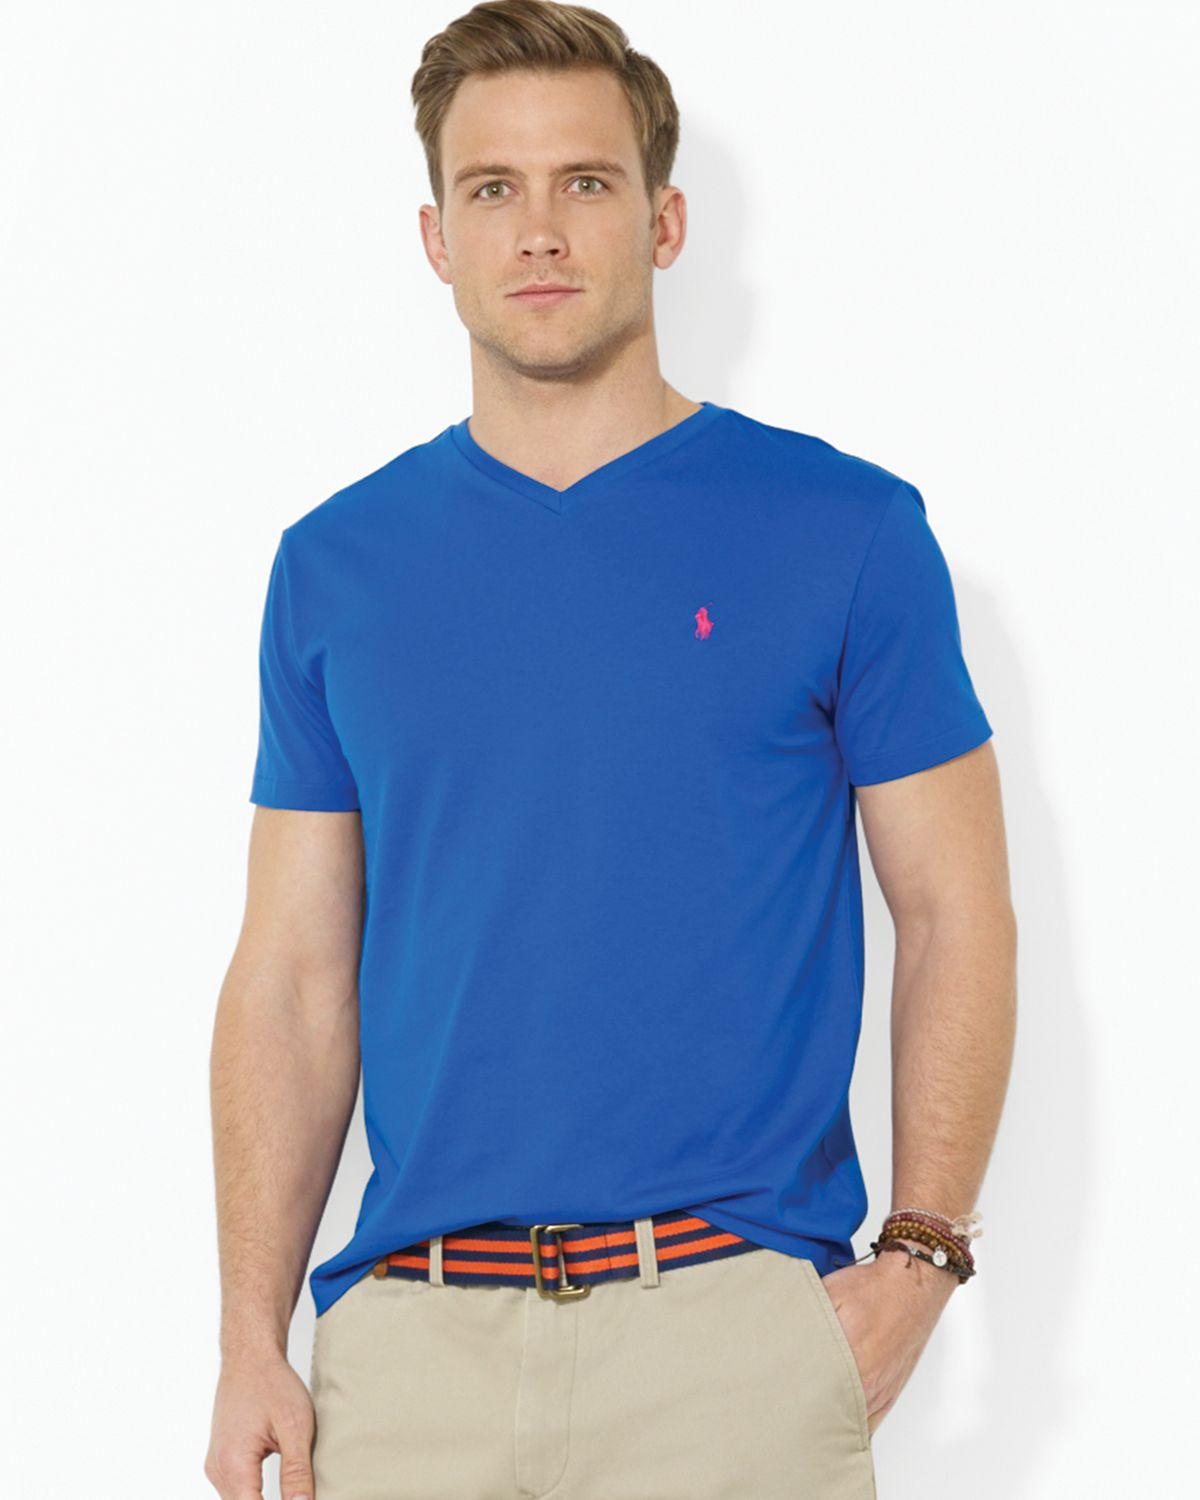 polo ralph lauren short sleeve cotton jersey v neck tee in blue for men lyst. Black Bedroom Furniture Sets. Home Design Ideas